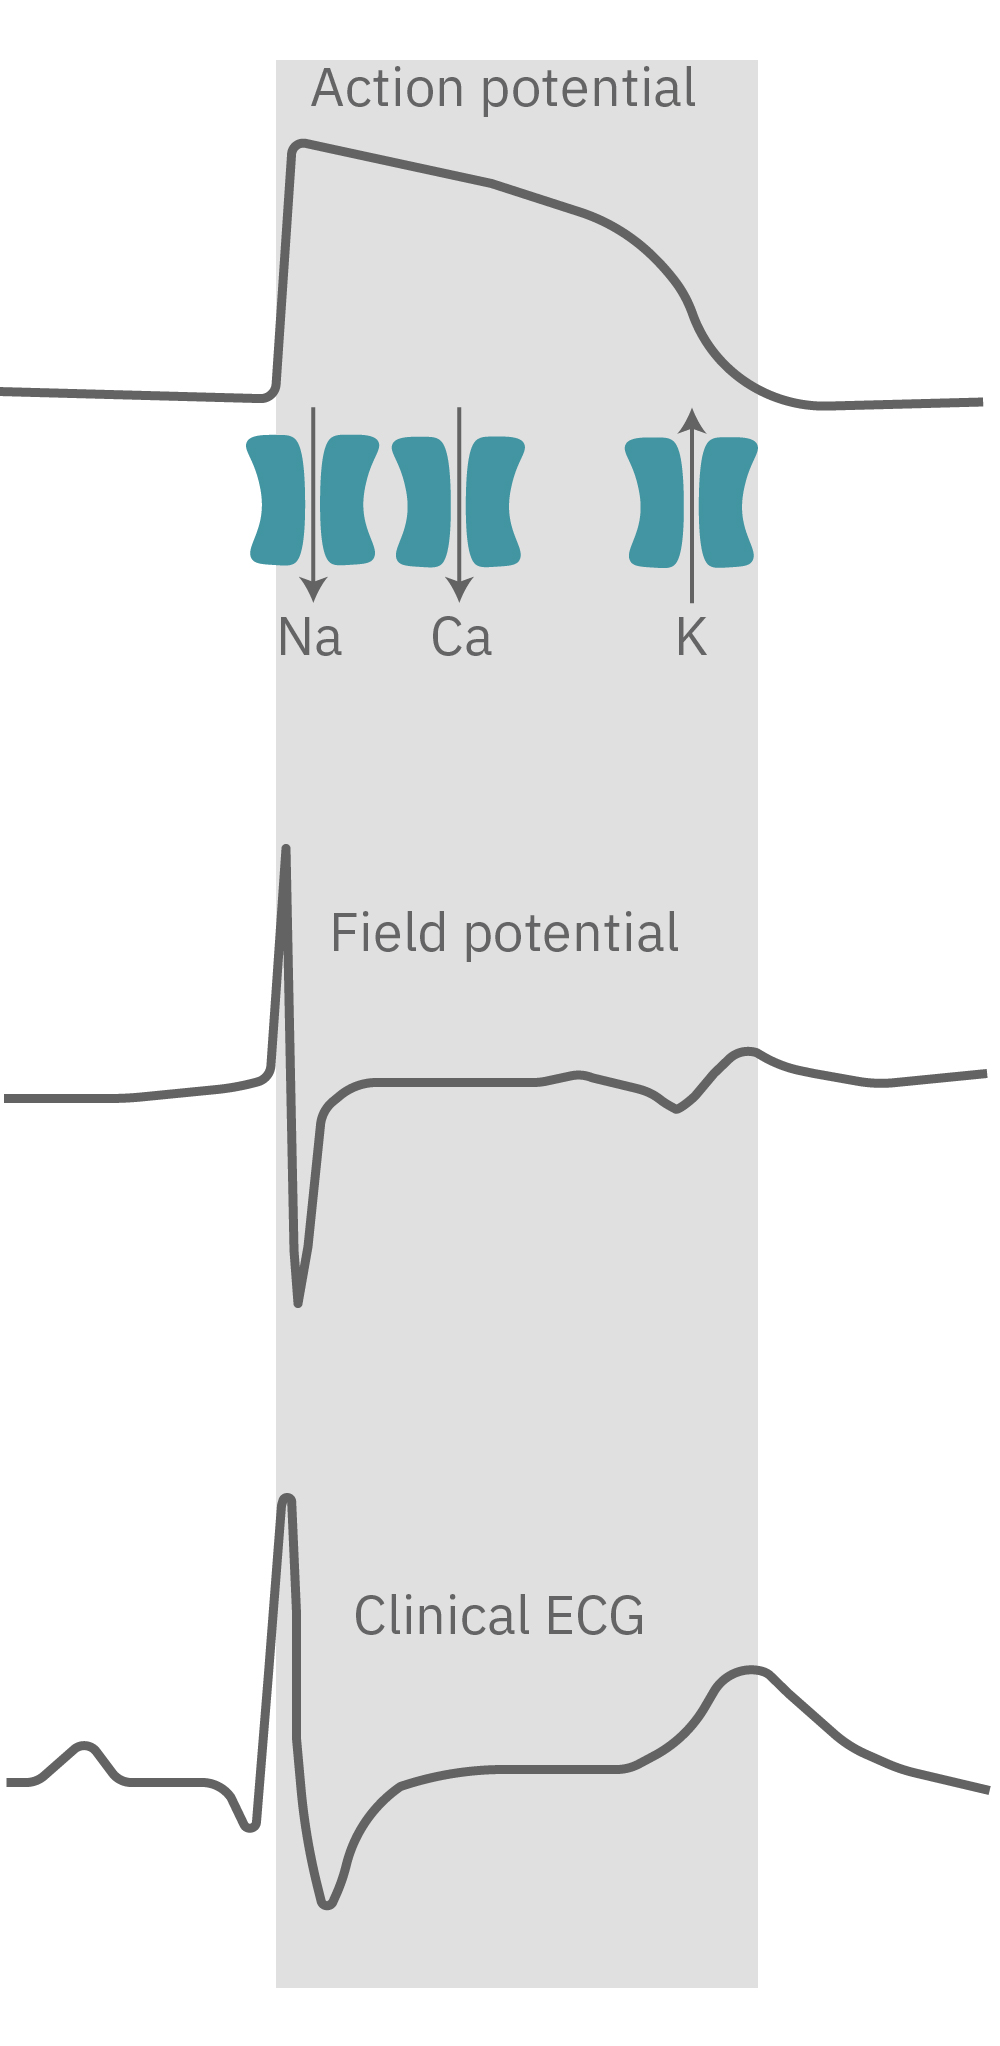 Cardiac Action potential propogates across the cells in the syncytium.